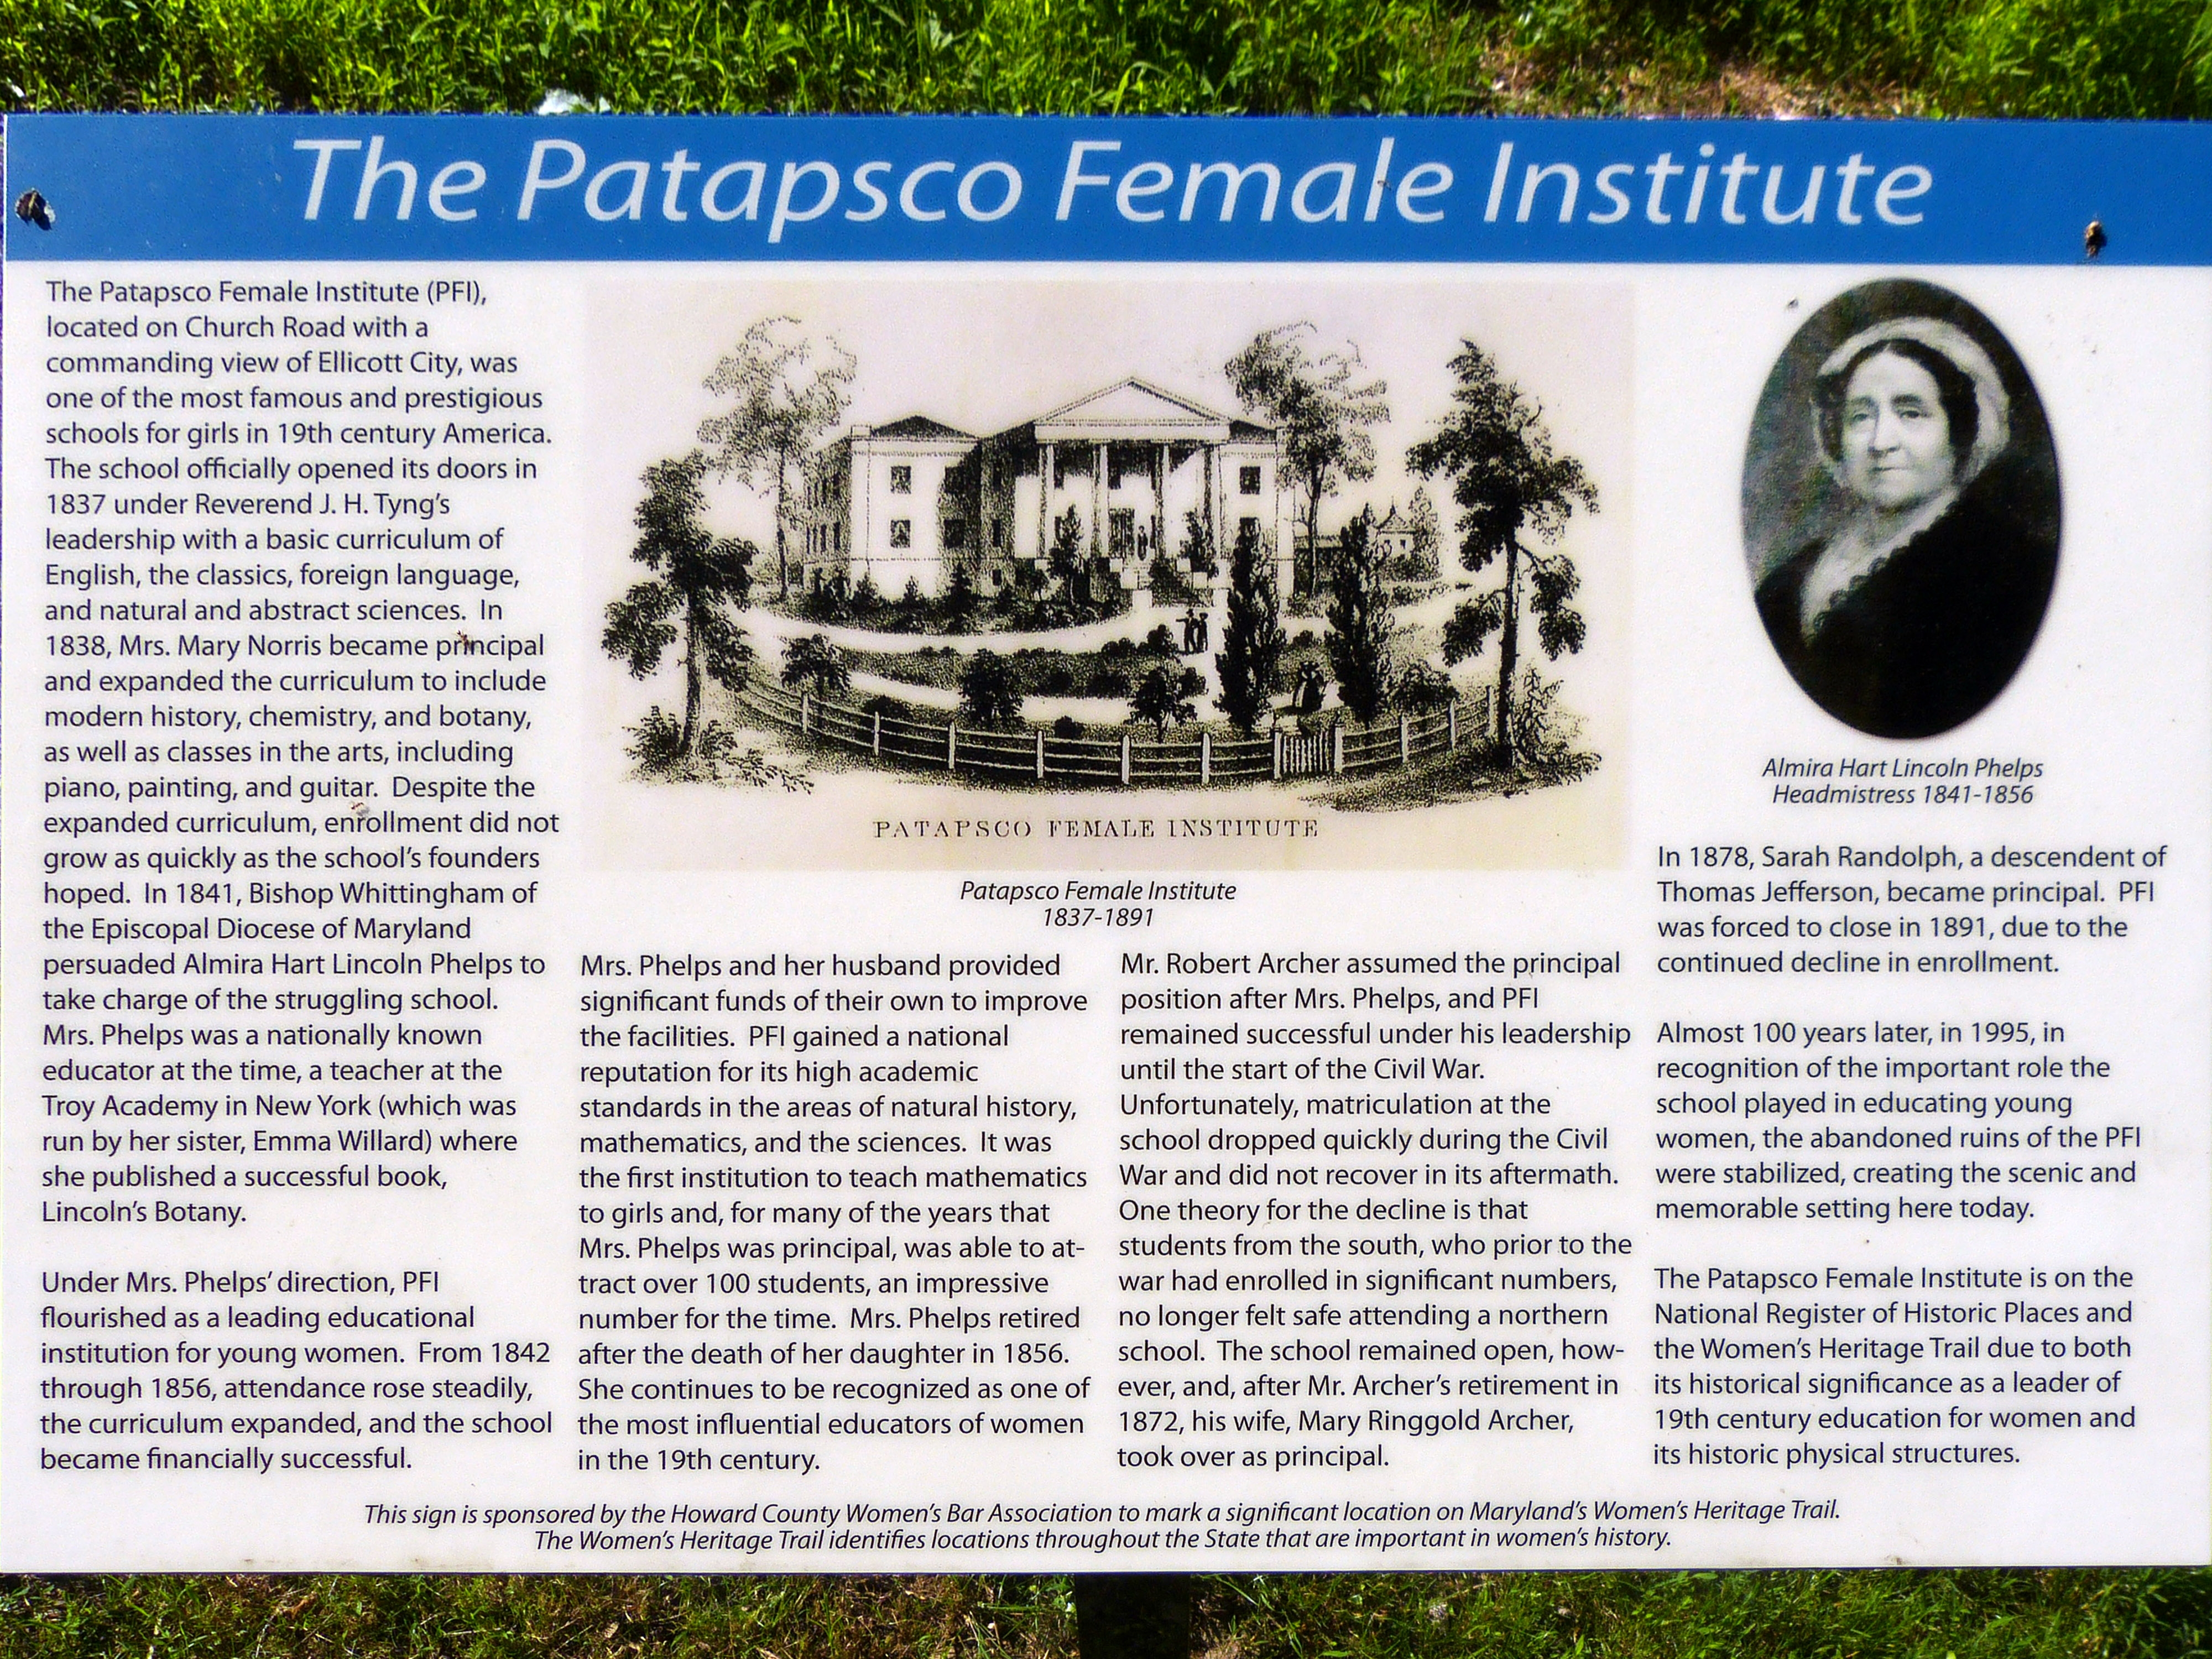 The Patapsco Female Institute Marker